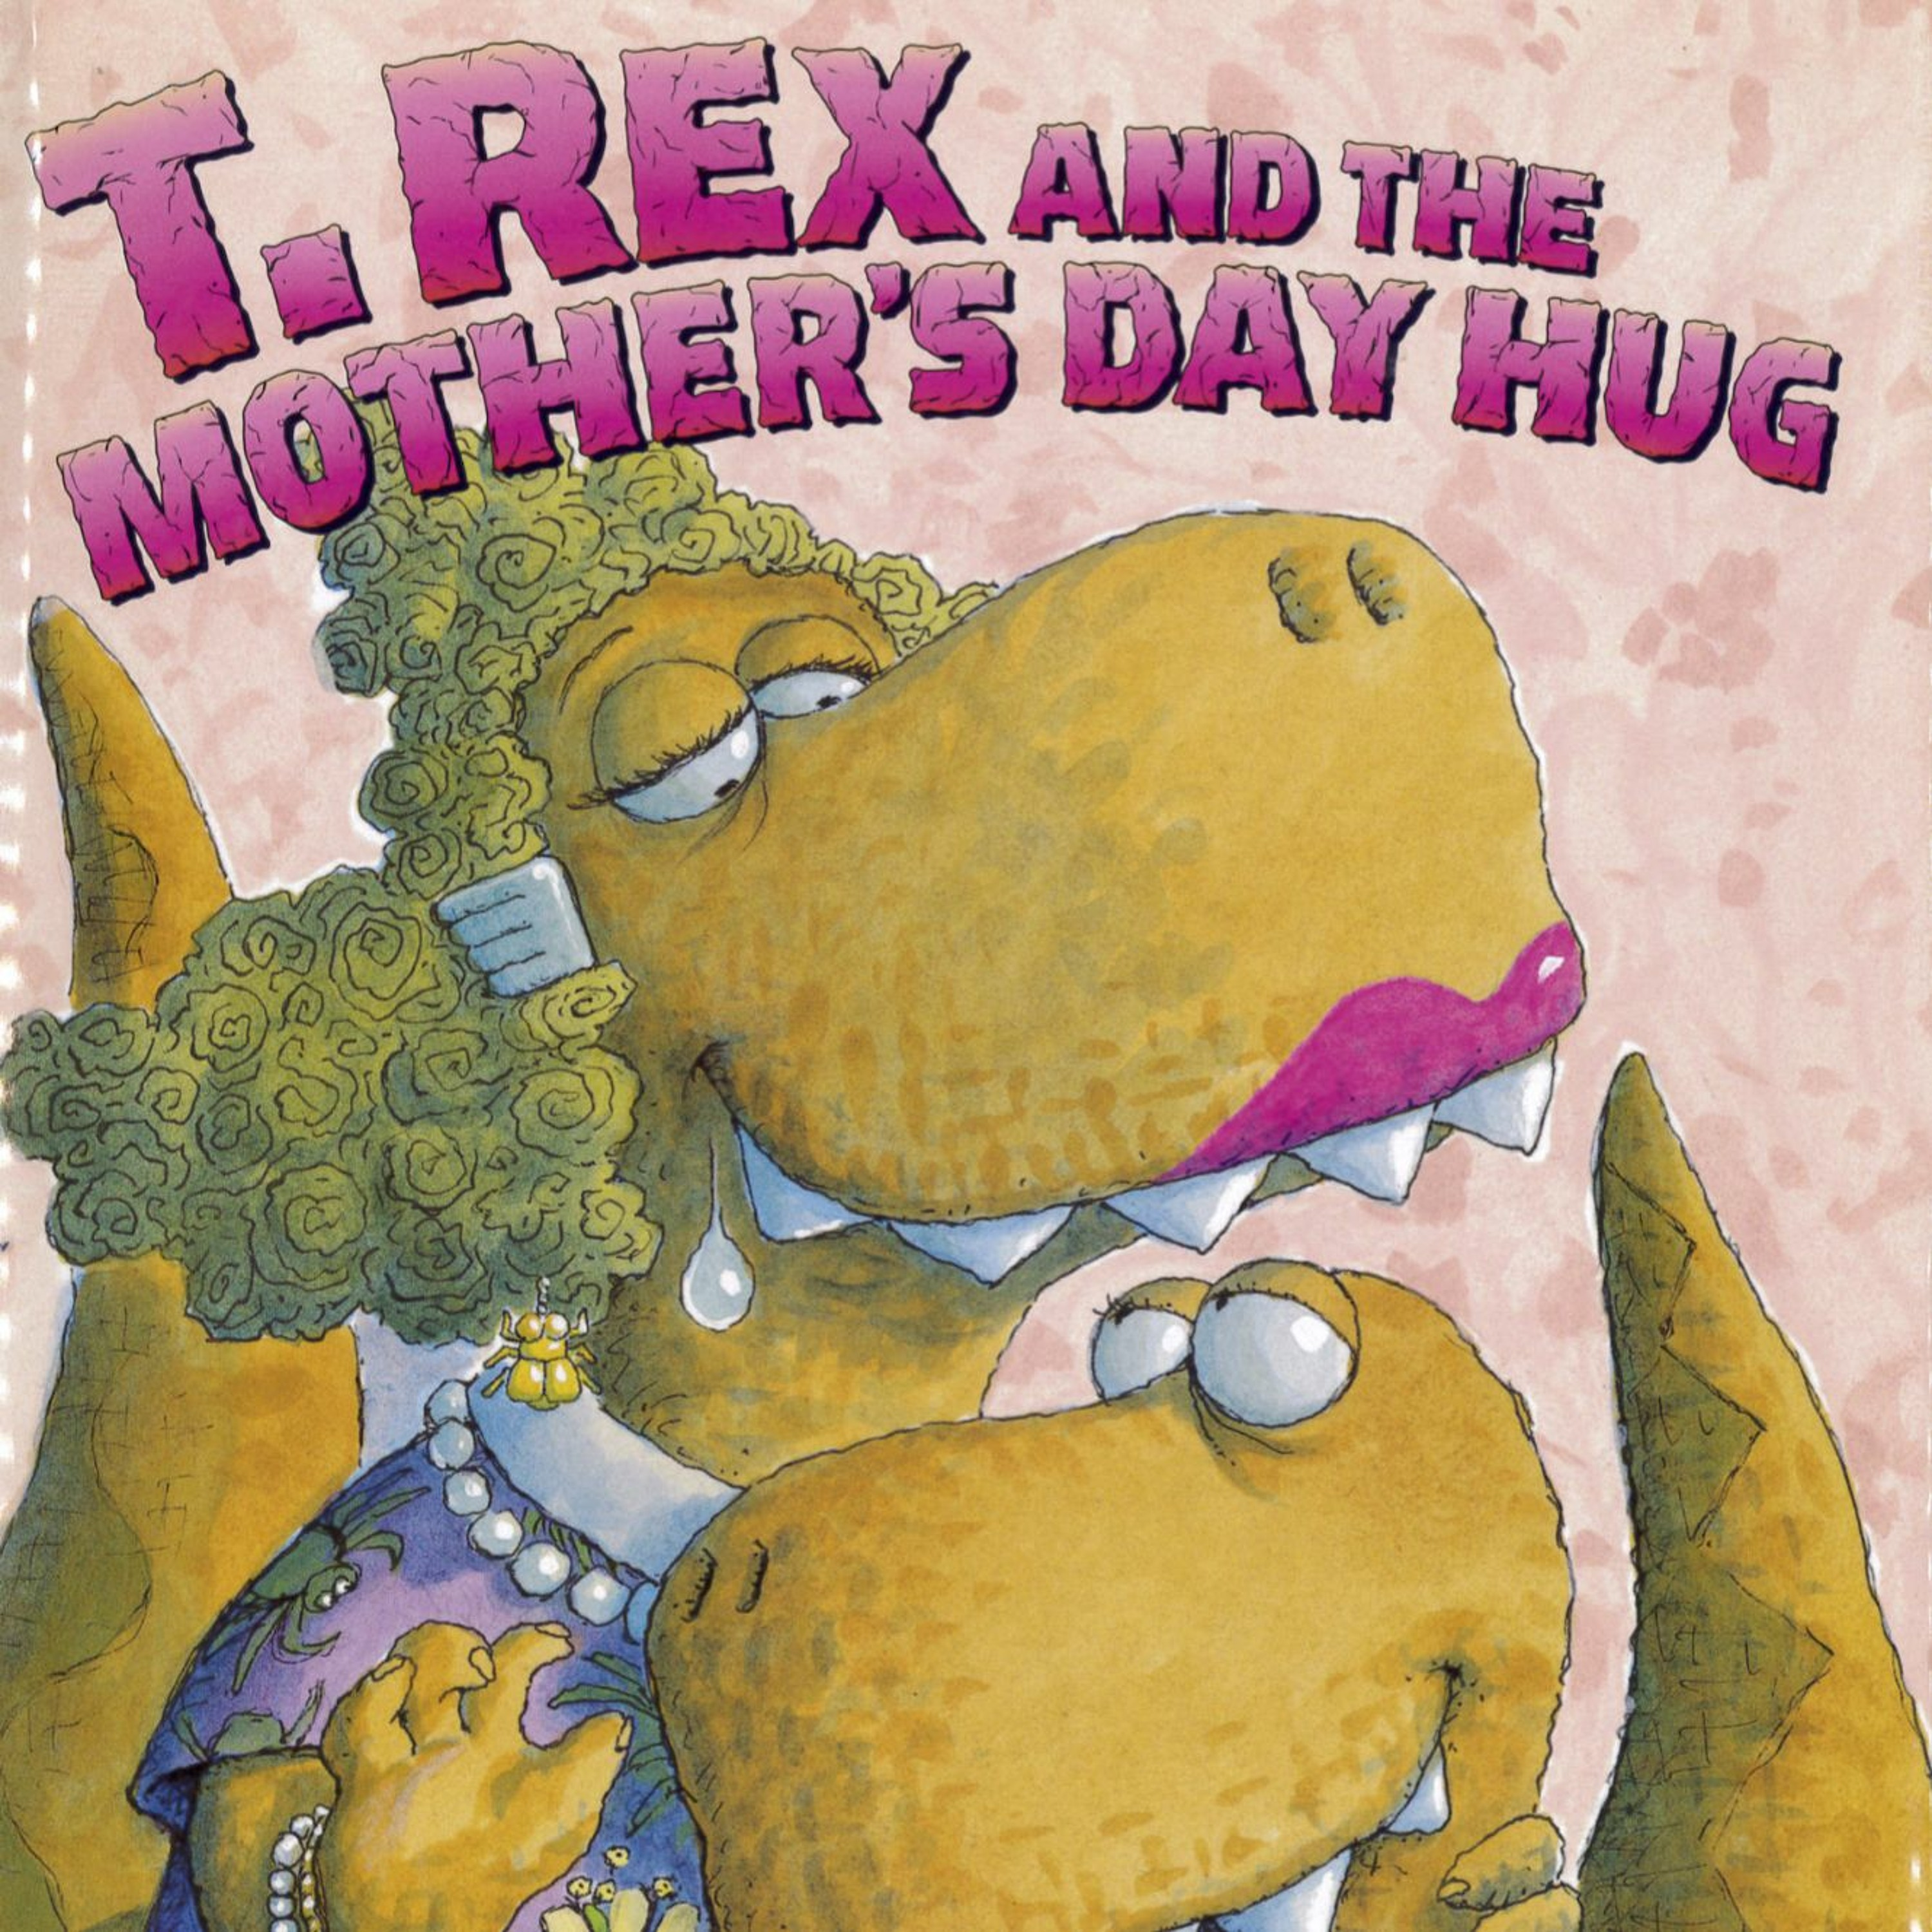 'T-Rex And The Mother's Day Hug' by Lois G. Grambling & Jack E. Davis